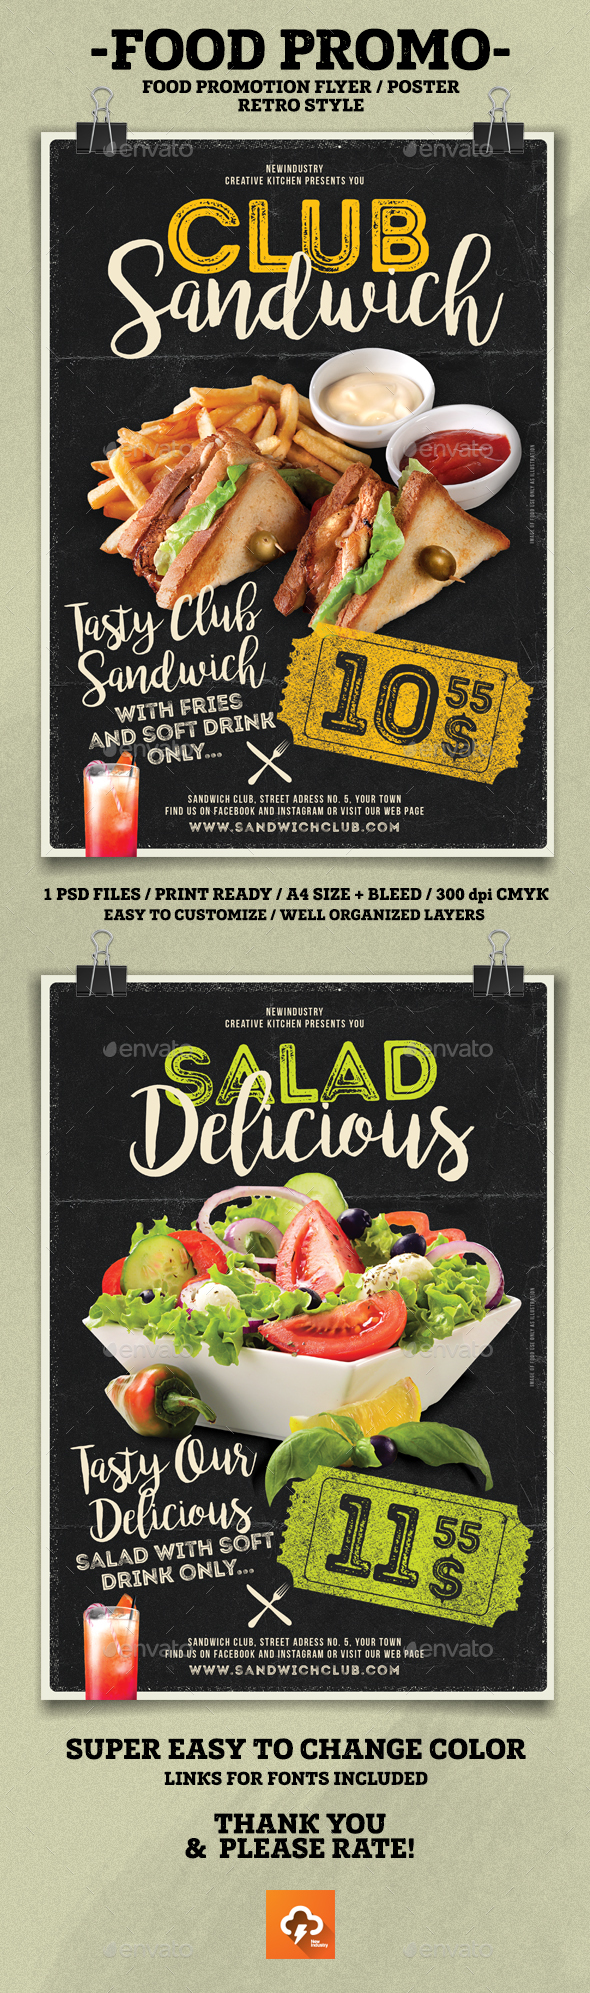 Food Promotion Flyer Poster